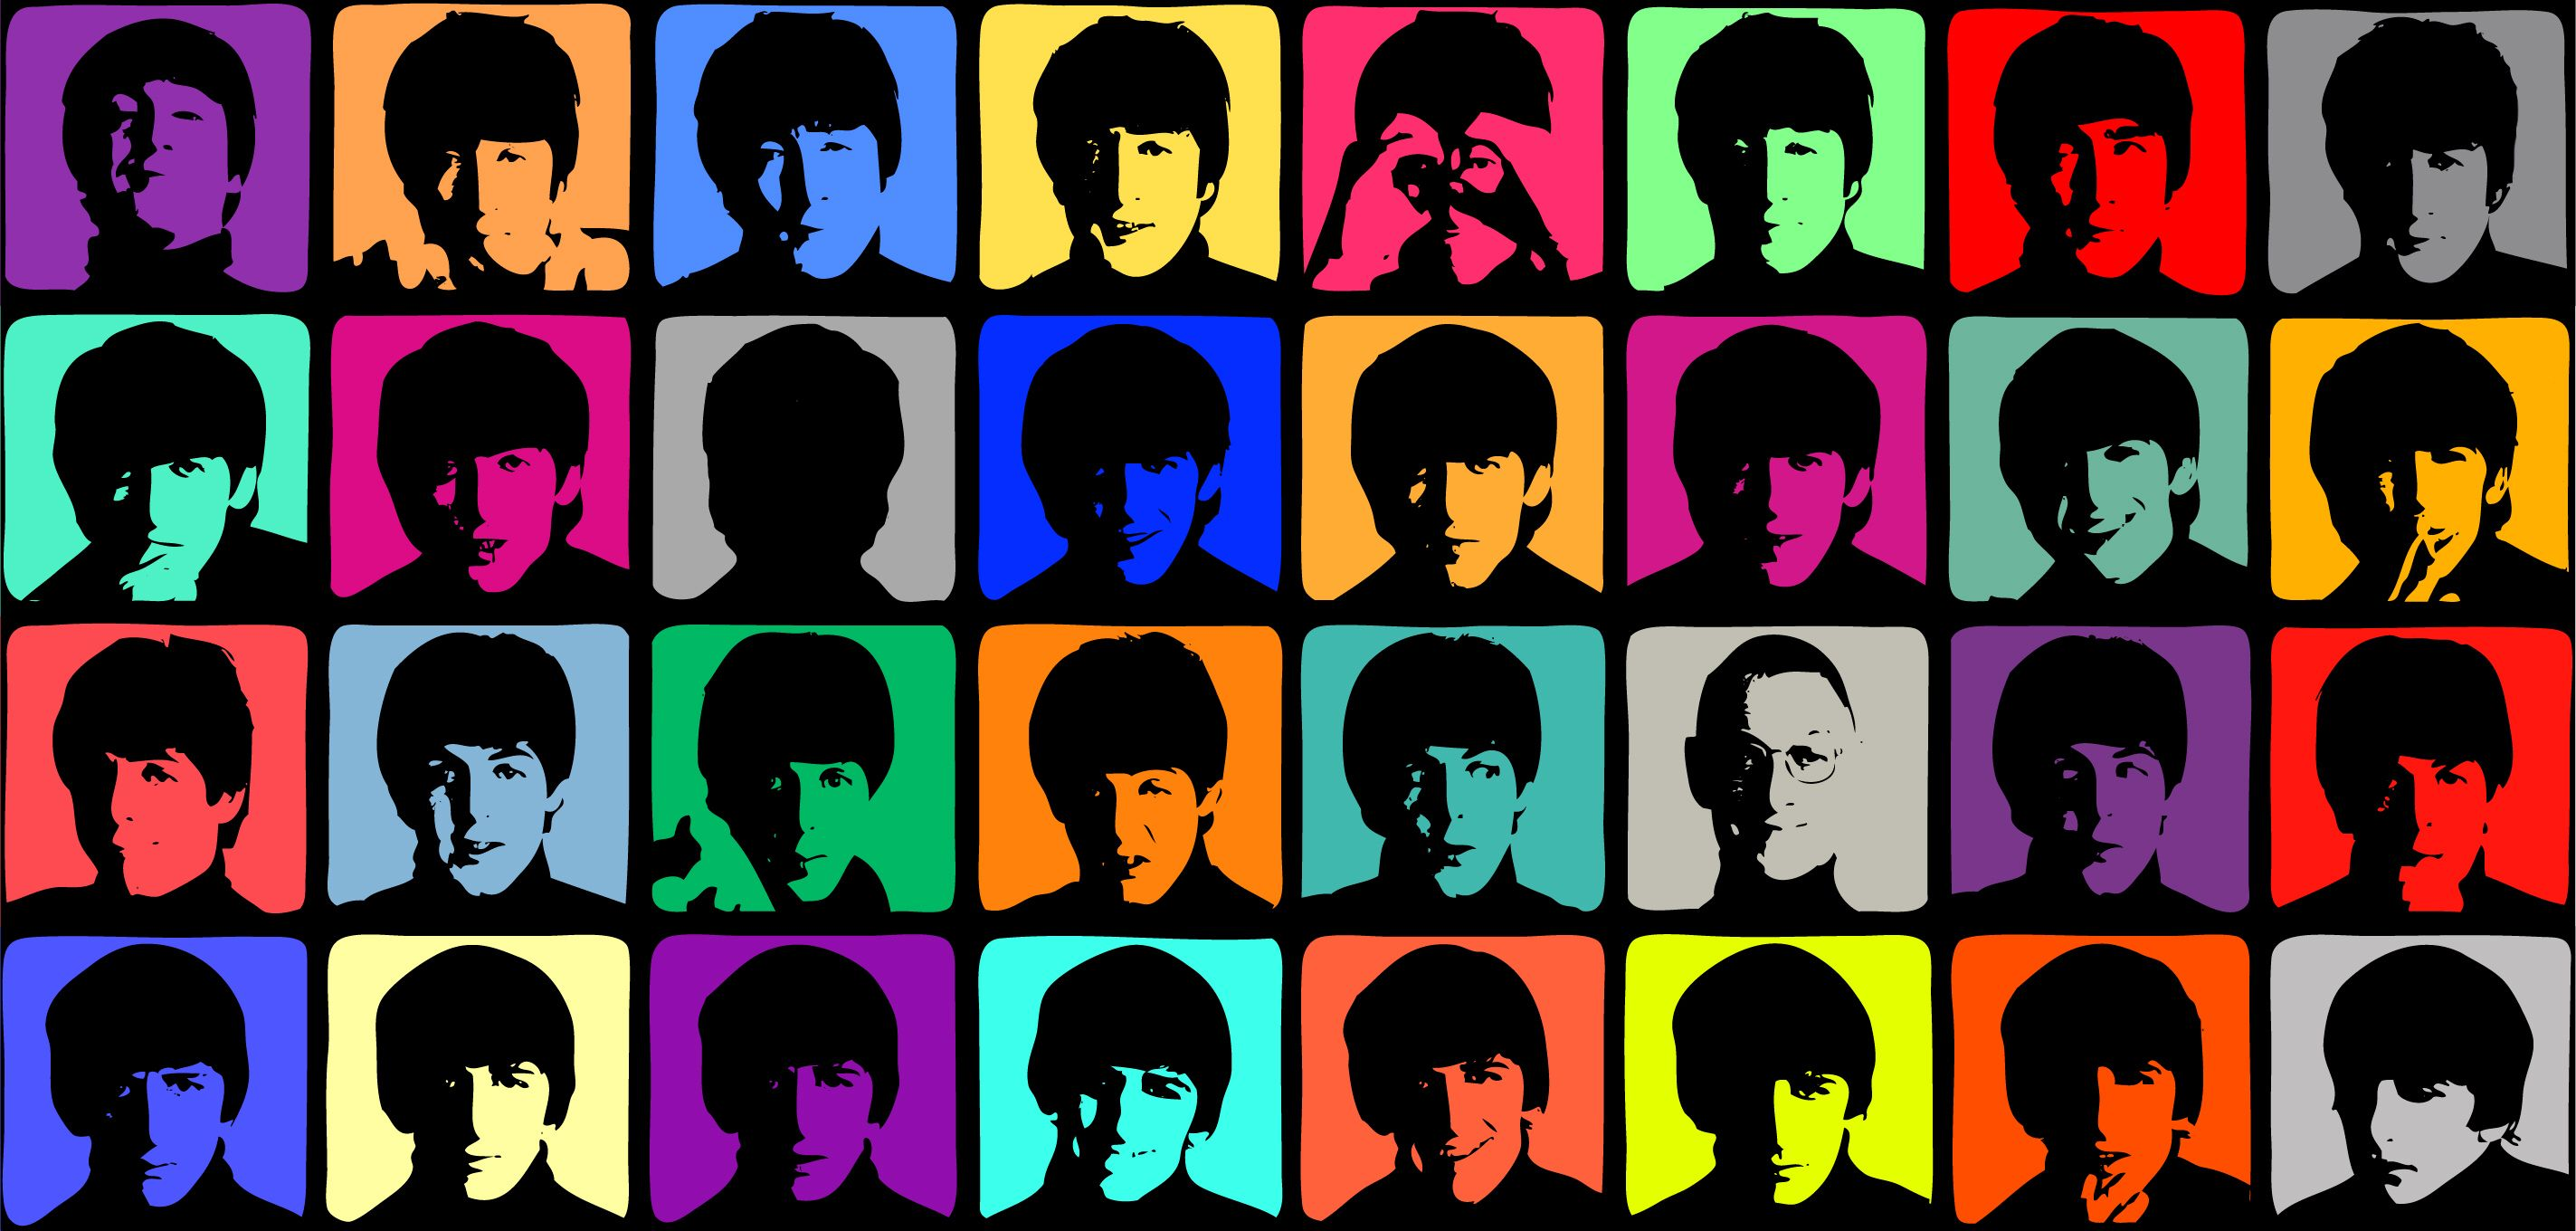 Explore The Beatles Pop Art And More